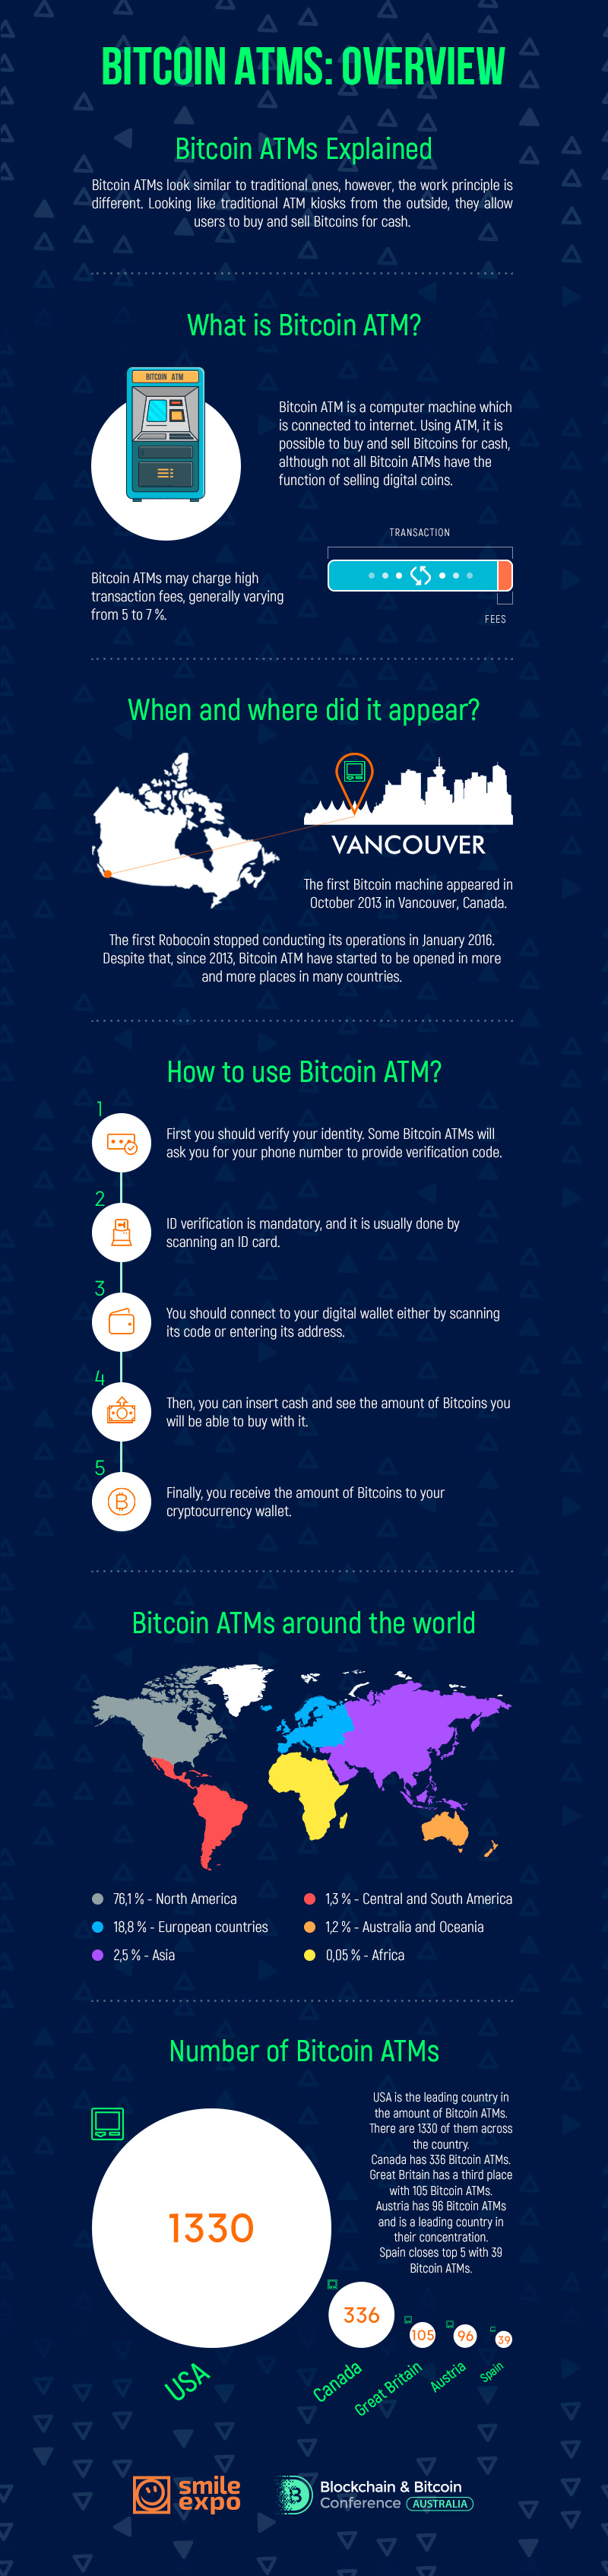 BBC Australia: Bitcoin ATMs: What Are They and How to Use Them? 1